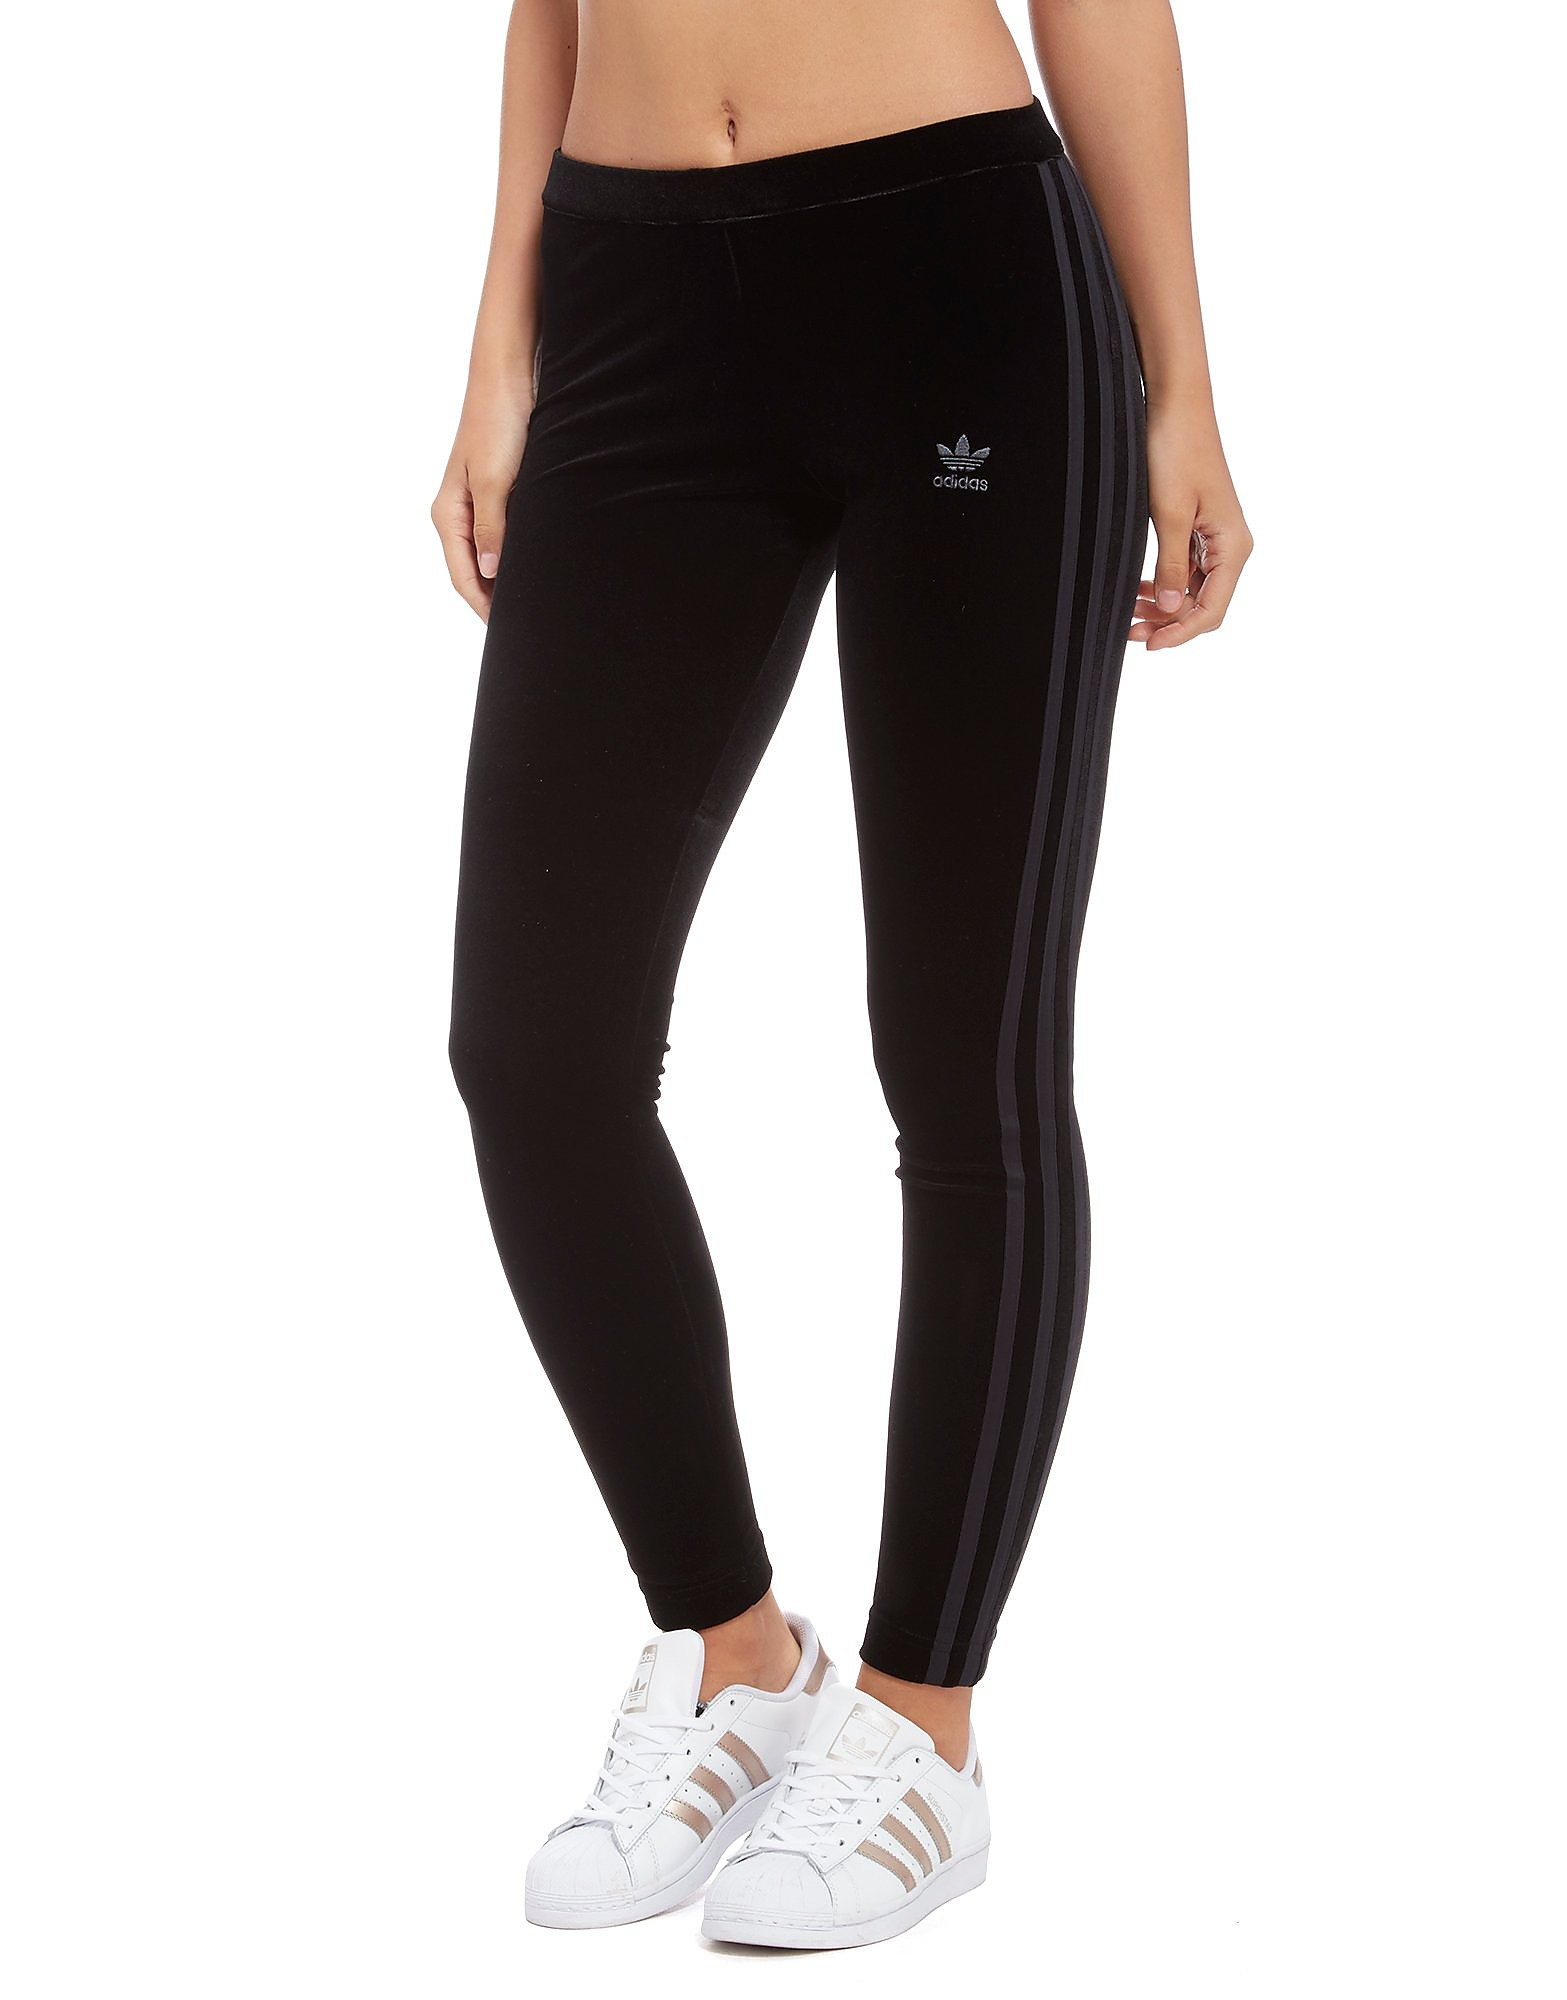 adidas Originals 3-Stripes Trefoil Samt Leggins